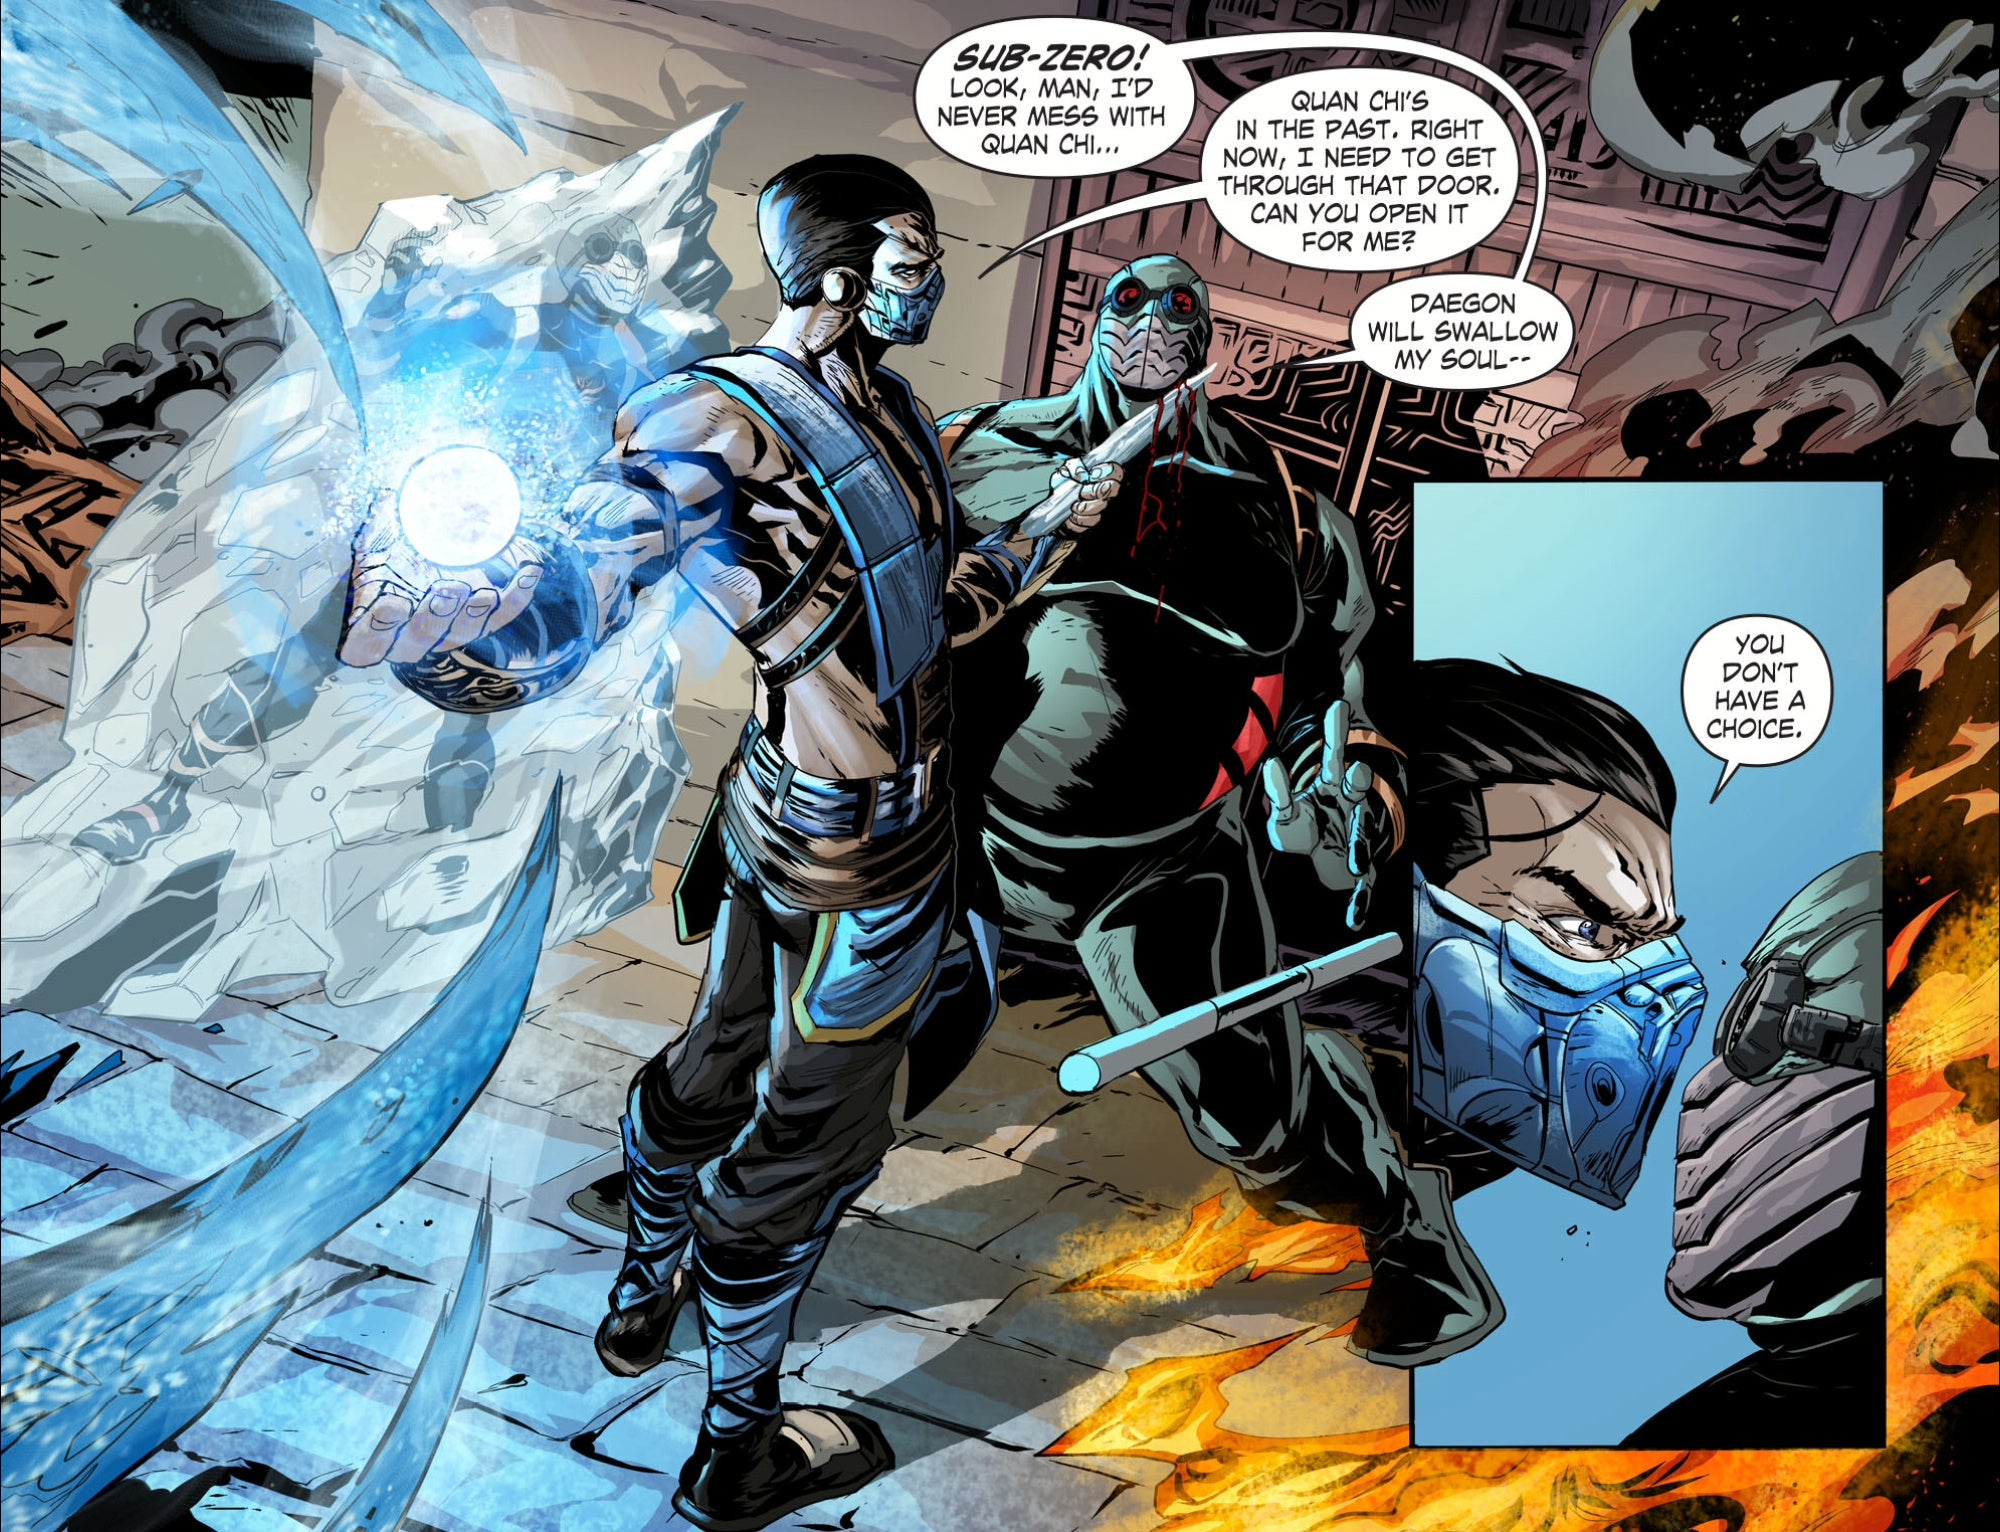 The New Mortal Kombat Comic Isn't Even Bad in a Good Way